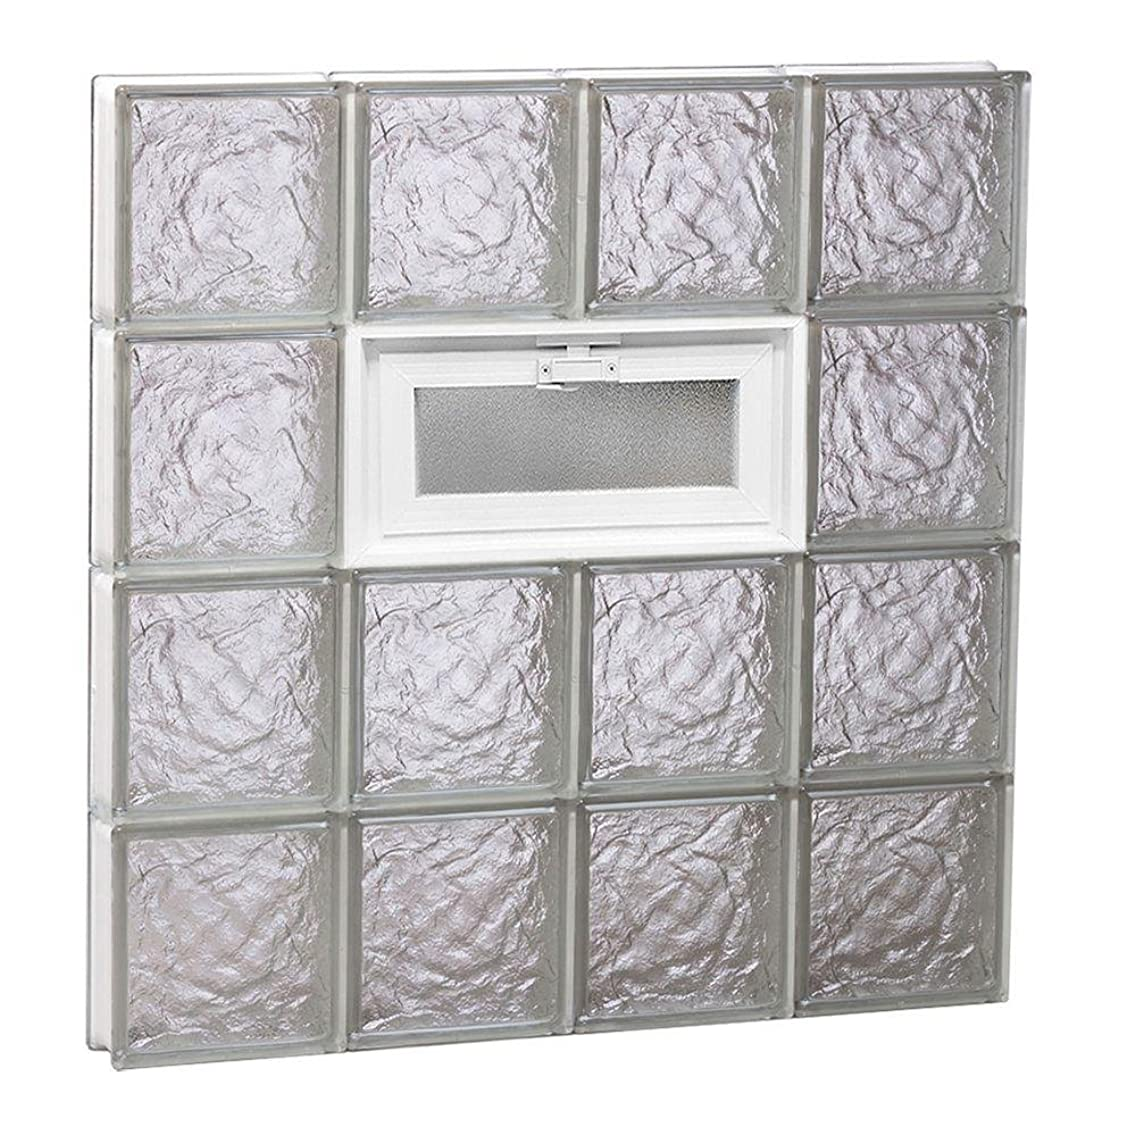 Clearly Secure 31 in. x 31 in. x 3.125 in. Frameless Ice Pattern Vented Glass Block Window